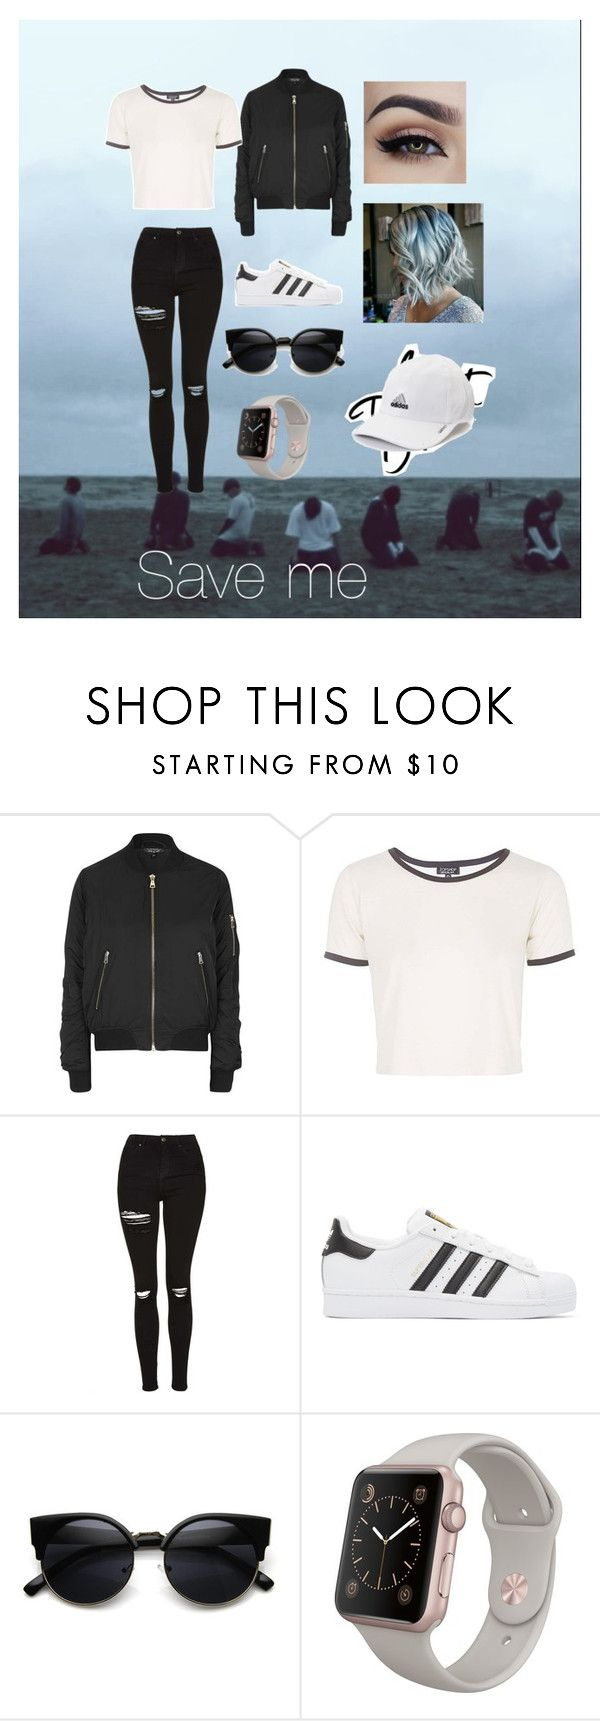 """""""Save me ( bts ) inspired outfit"""" by bts4ever02 ❤ liked on Polyvore featuring Topshop, adidas Originals and adidas"""